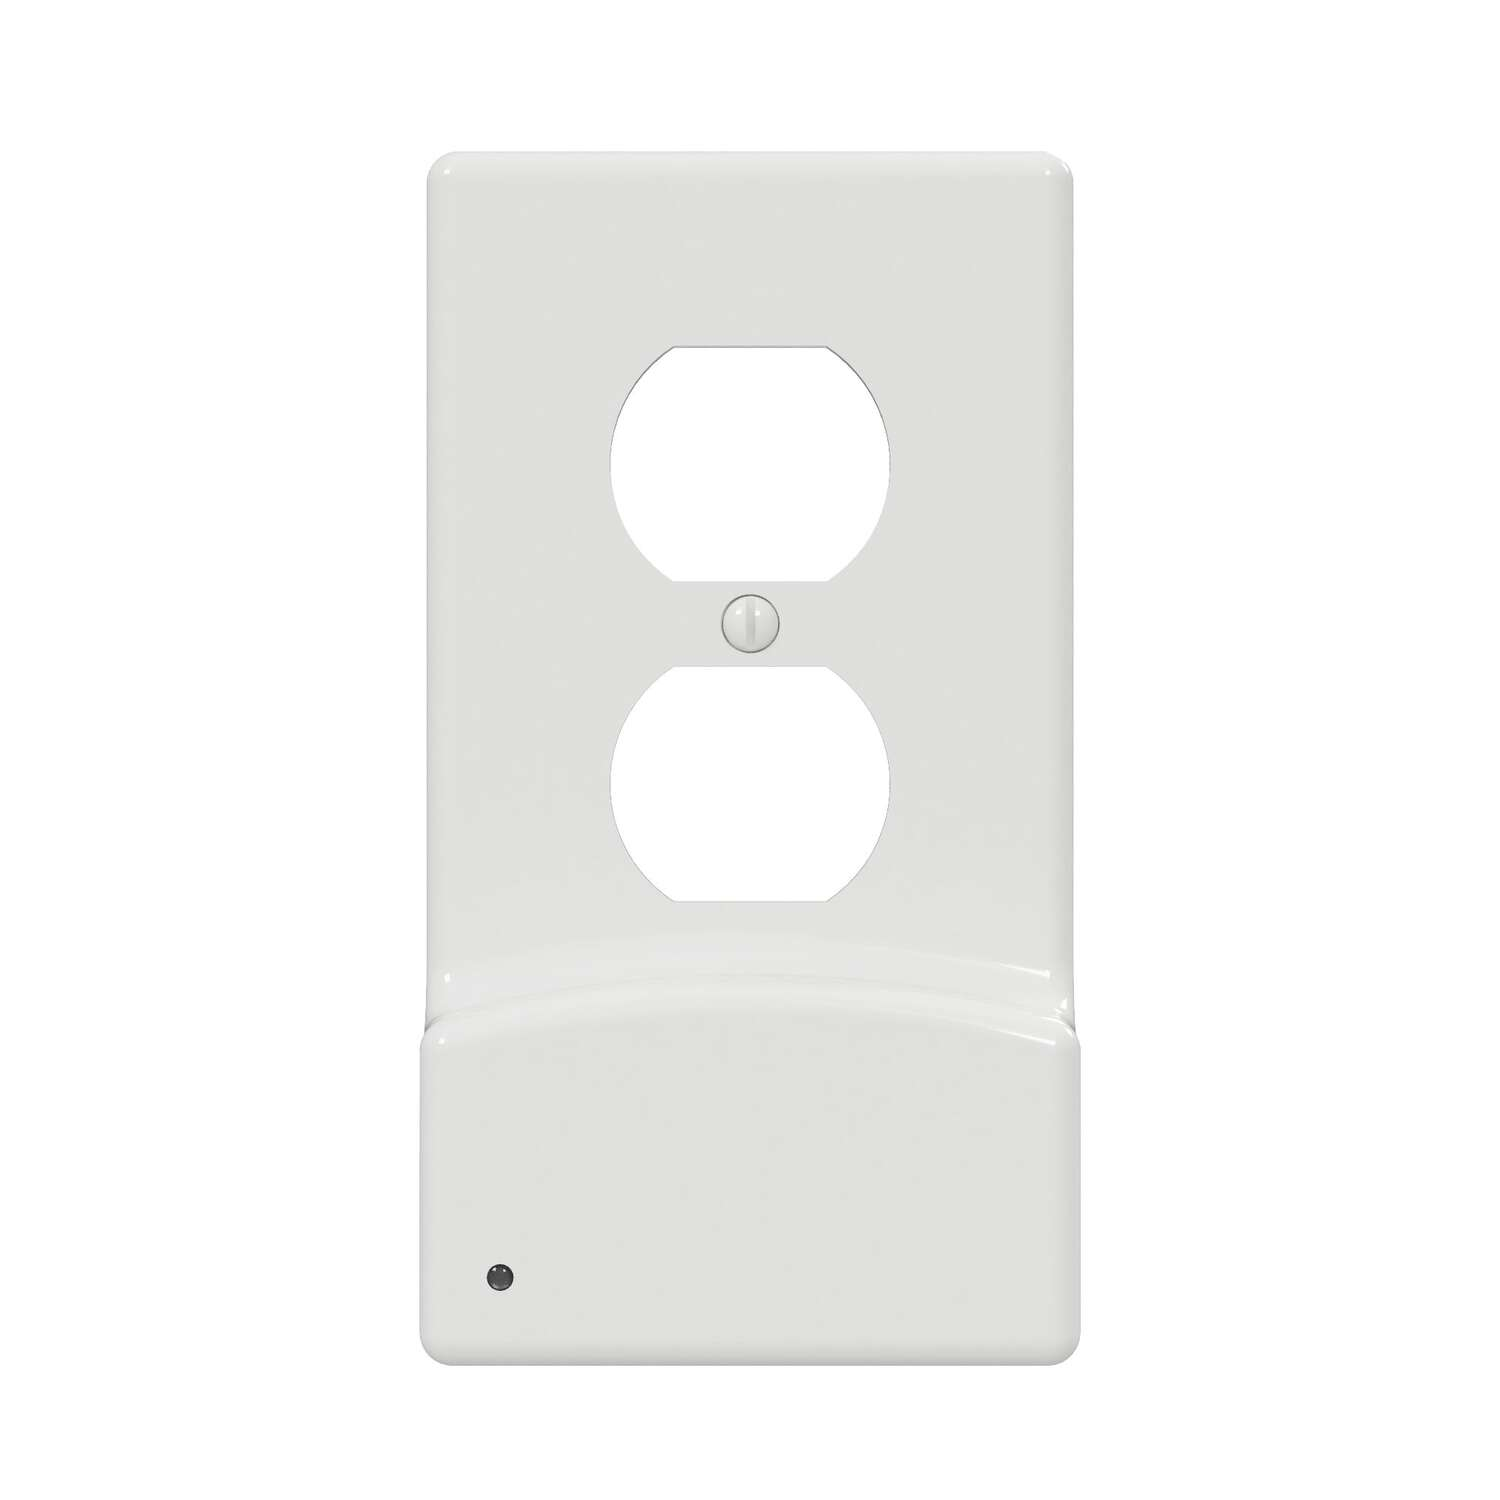 Westek LumiCover White 1 gang Plastic Duplex USB Nightlight Wall Plate 1 pk